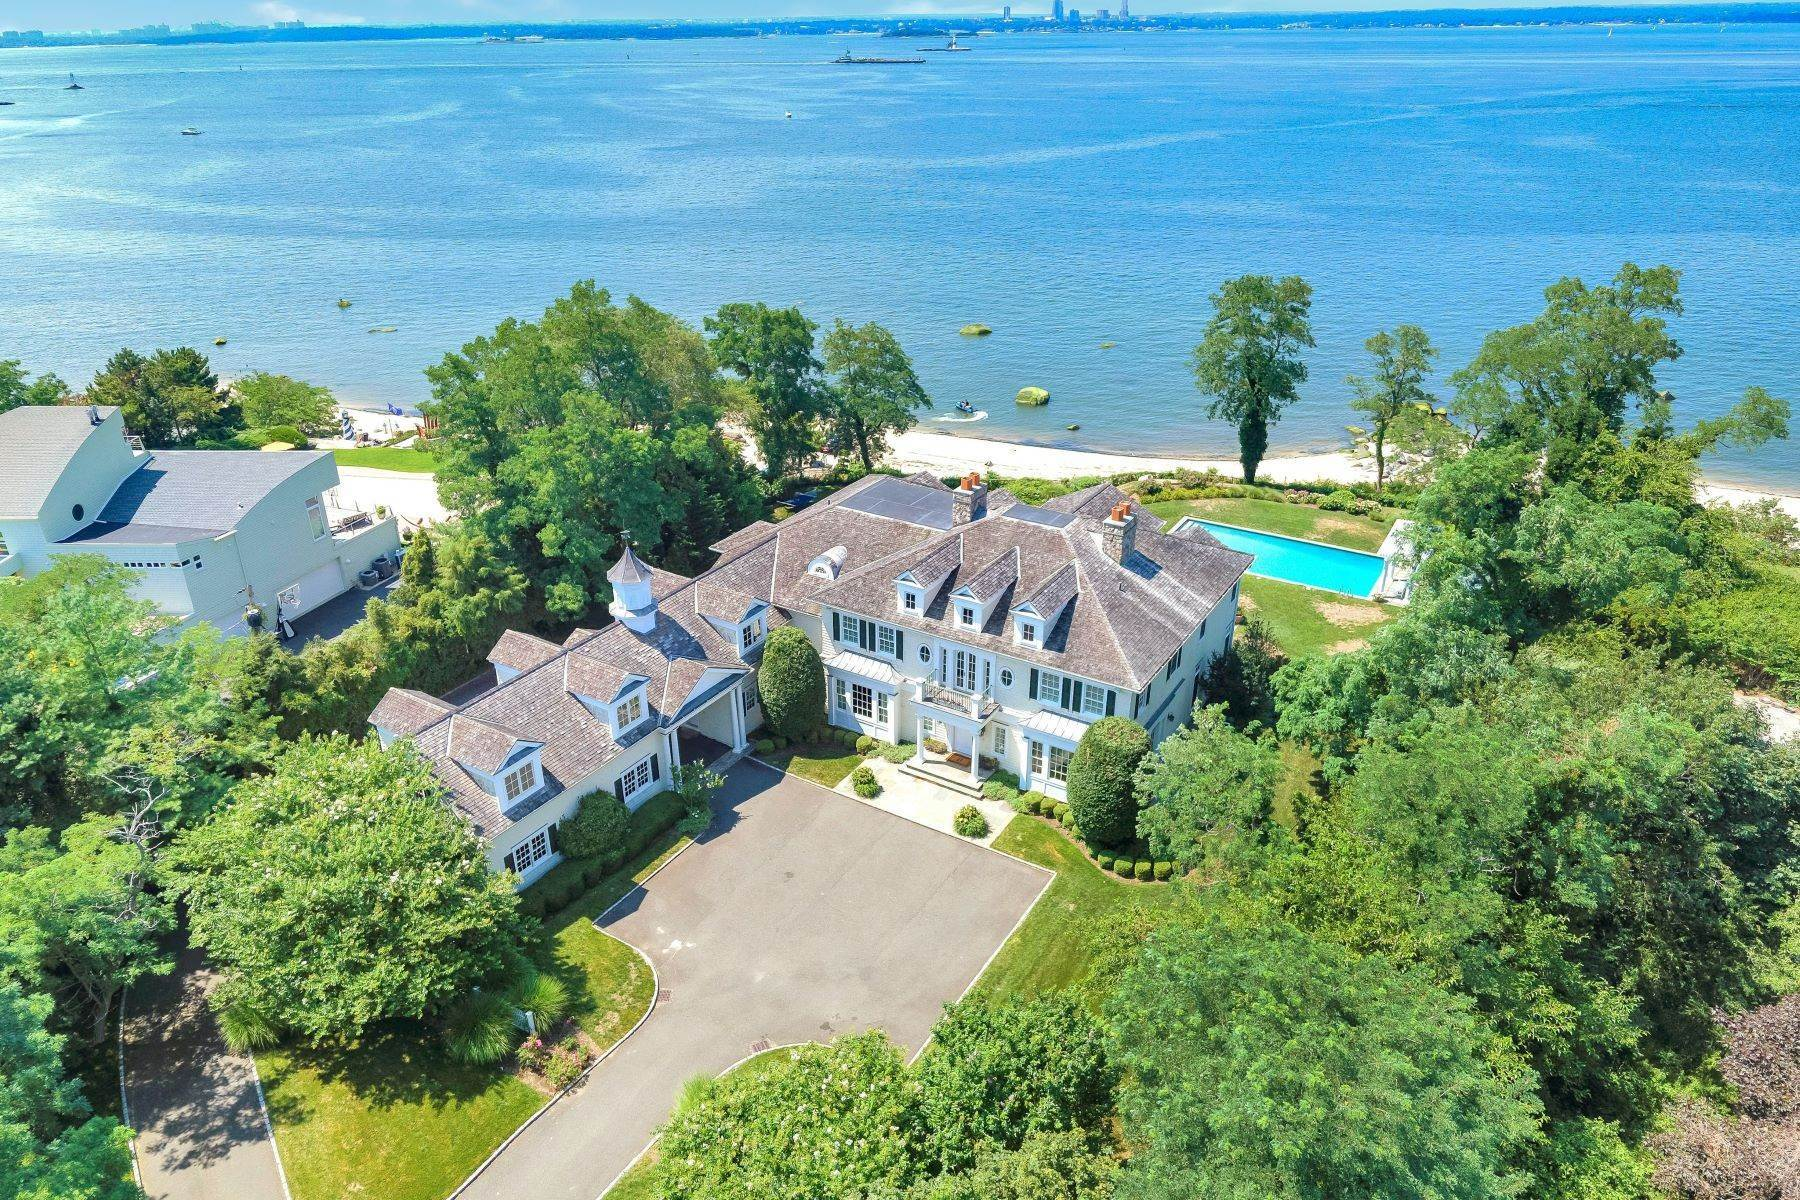 Single Family Homes for Sale at 26 Hoffstot Lane, Sands Point, Ny, 11050 26 Hoffstot Lane Sands Point, New York 11050 United States